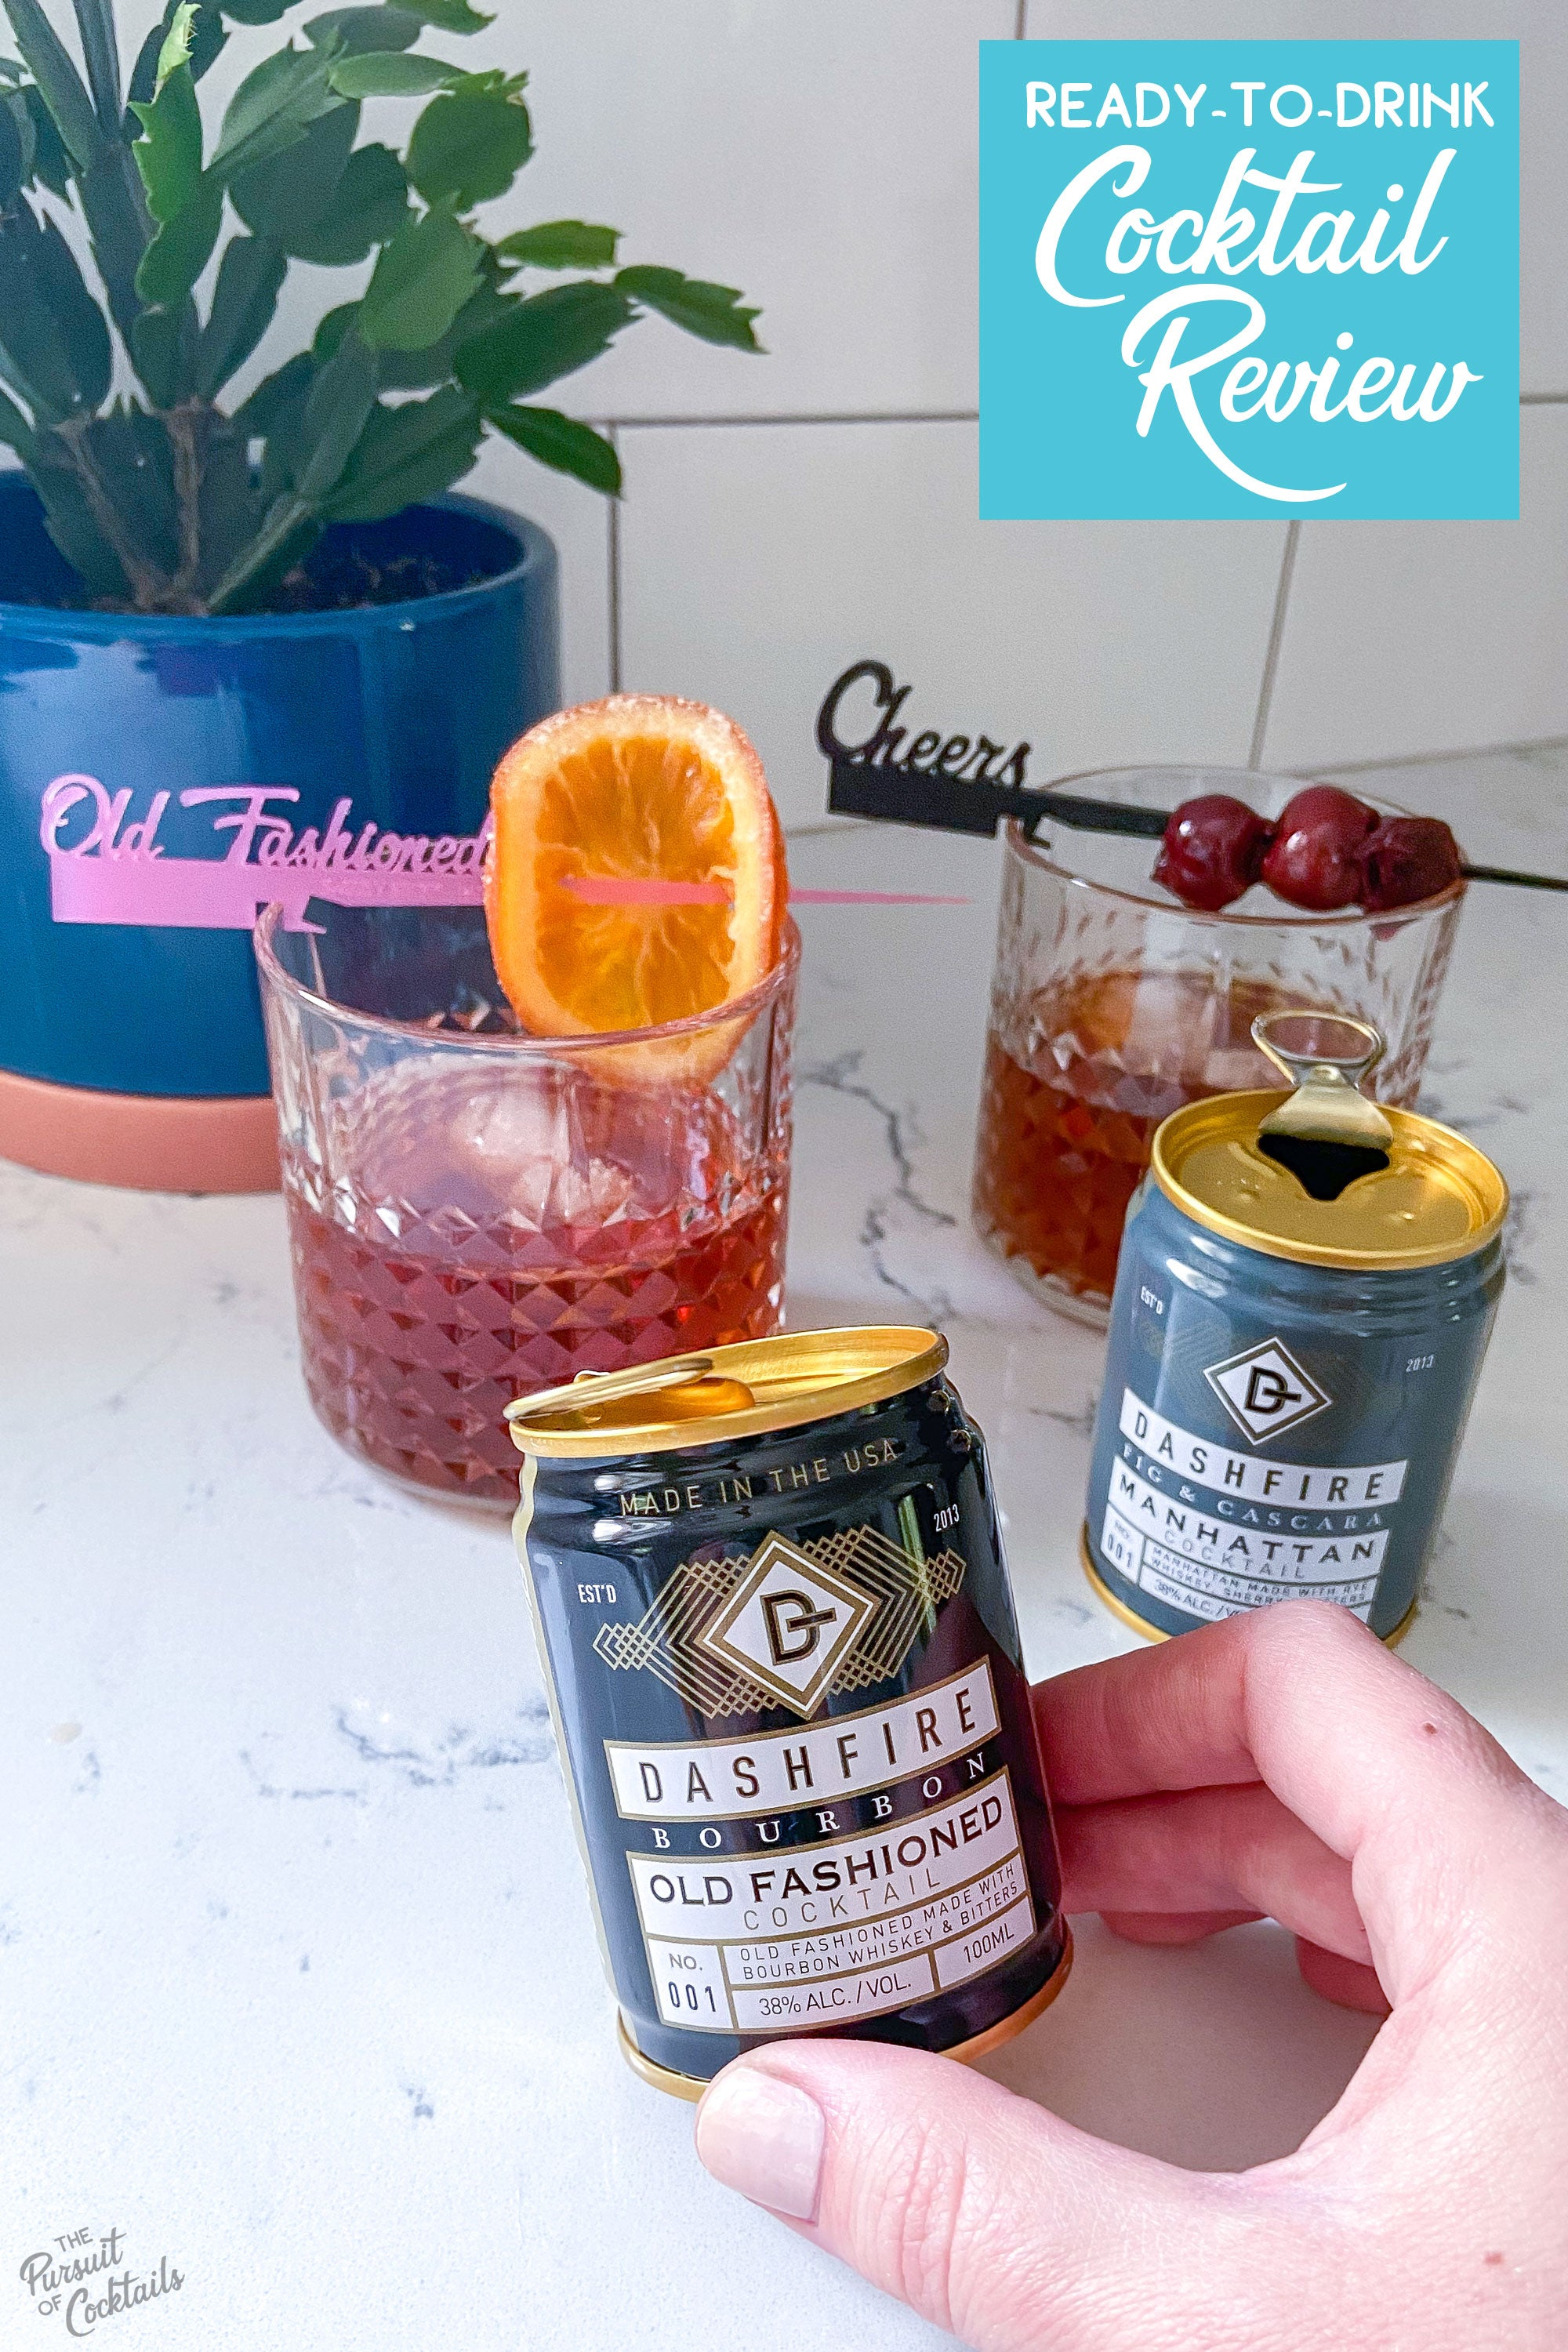 Dashfire Old Fashioned and Manhattan canned cocktail reviewed by The Pursuit of Cocktails